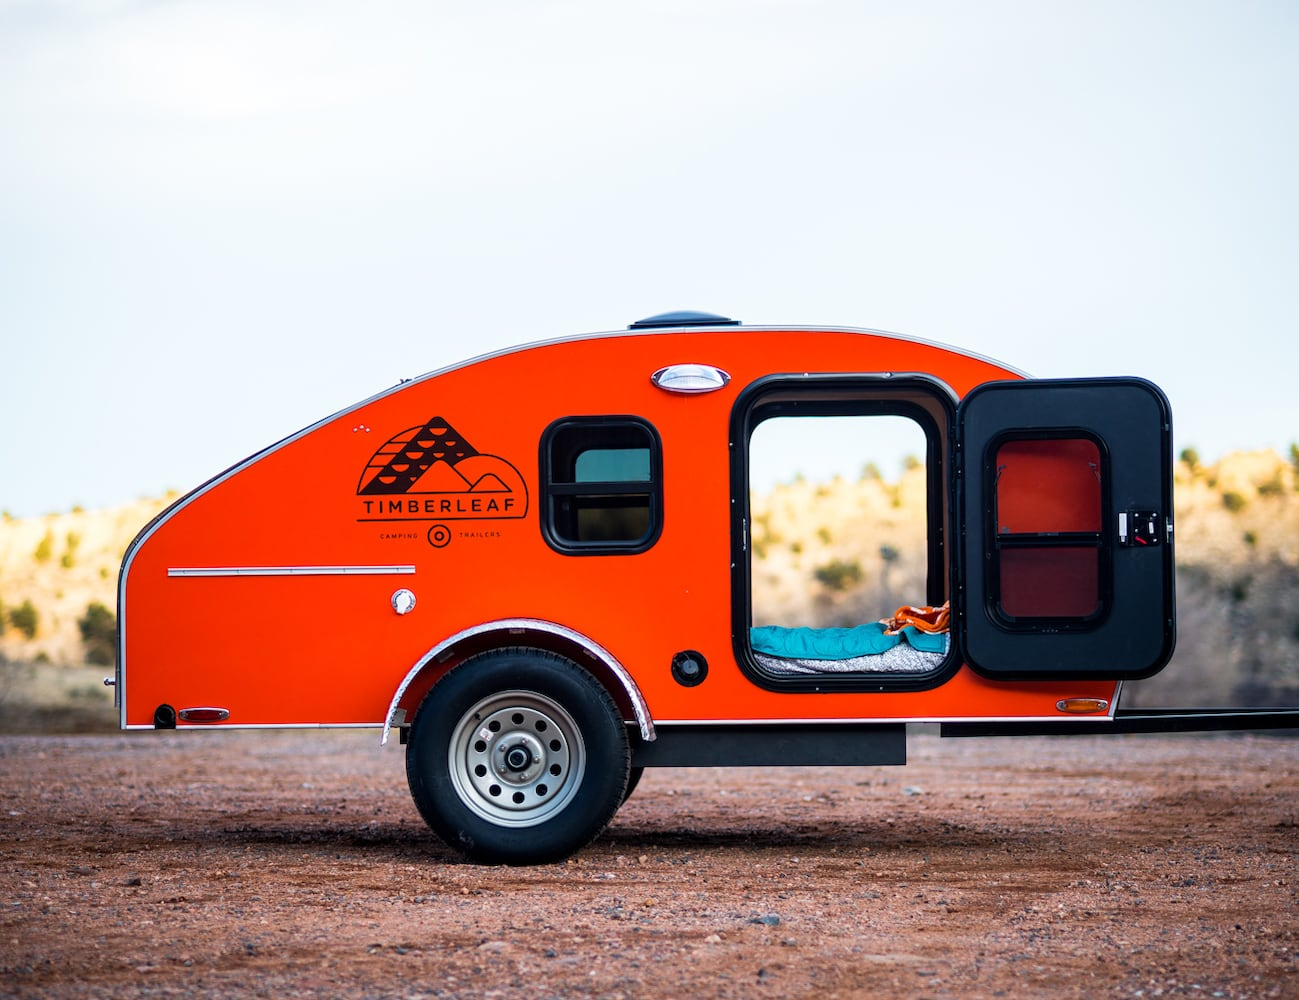 Timberleaf Teardrop Trailers let you camp off the beaten path